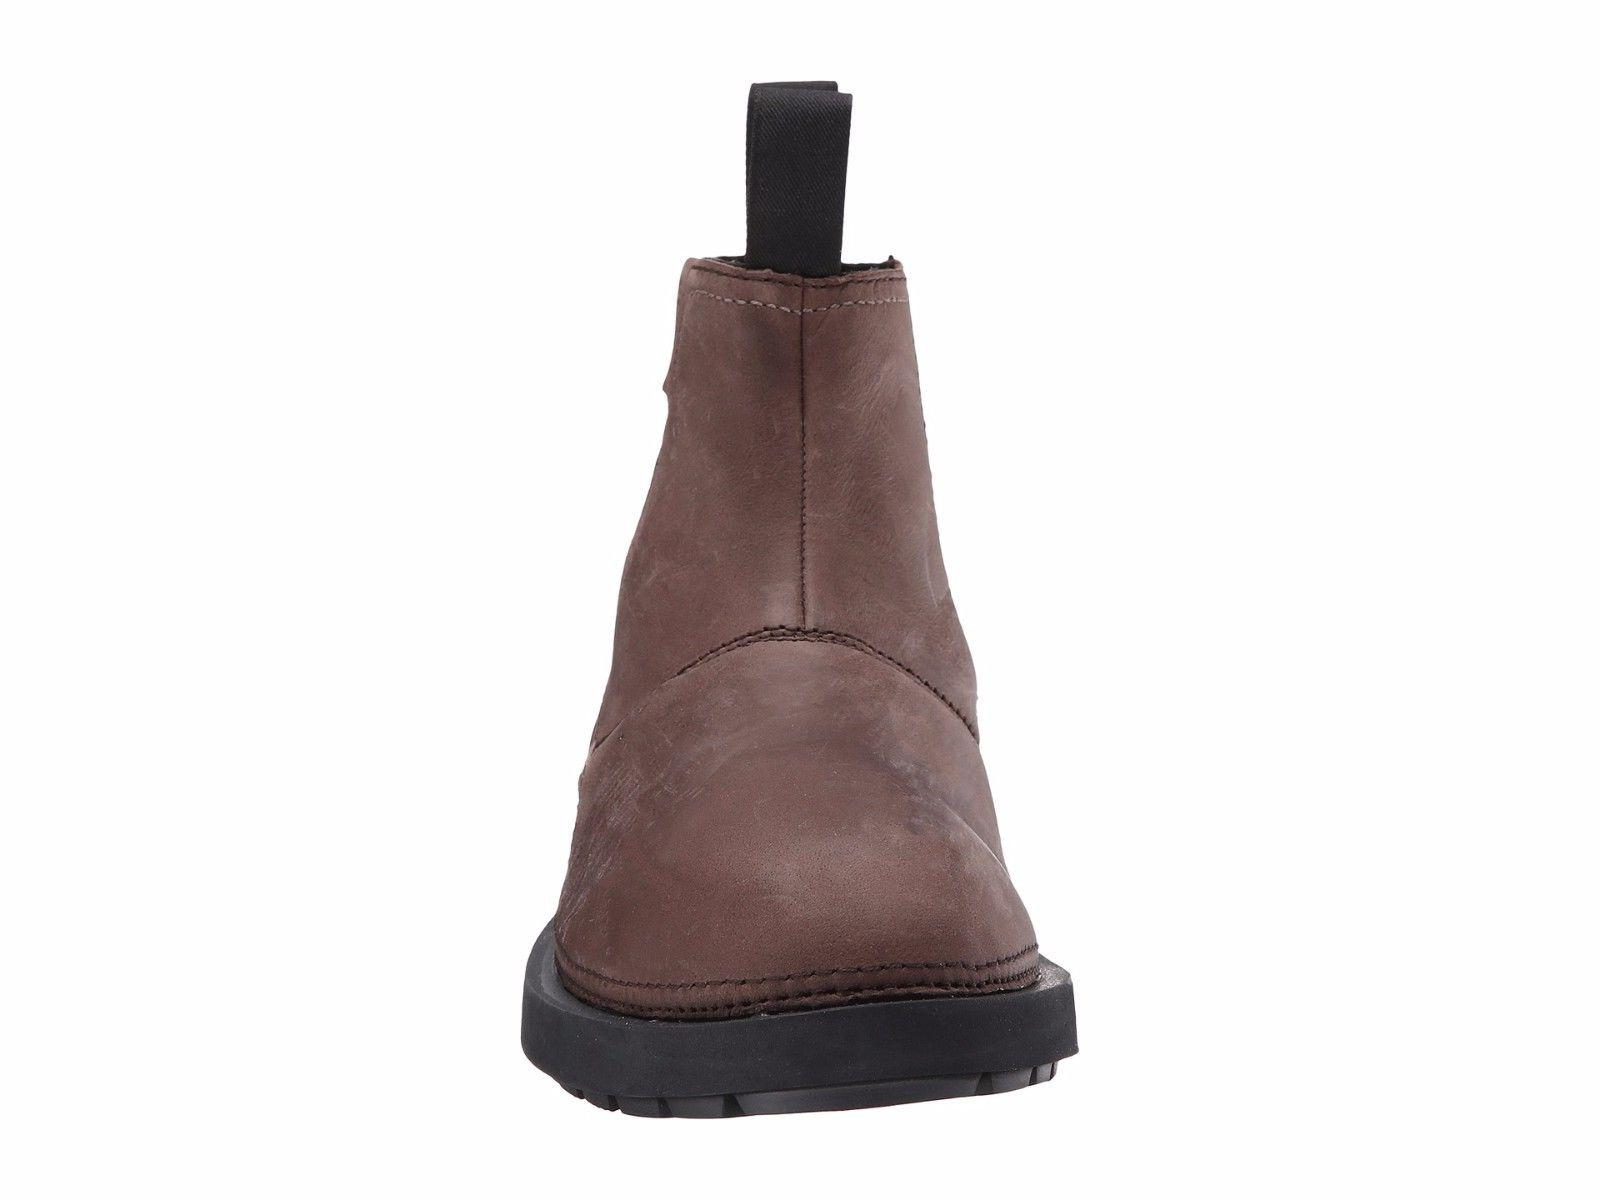 NEW Men's Crocs Breck Boot Leather Shoes 8 12